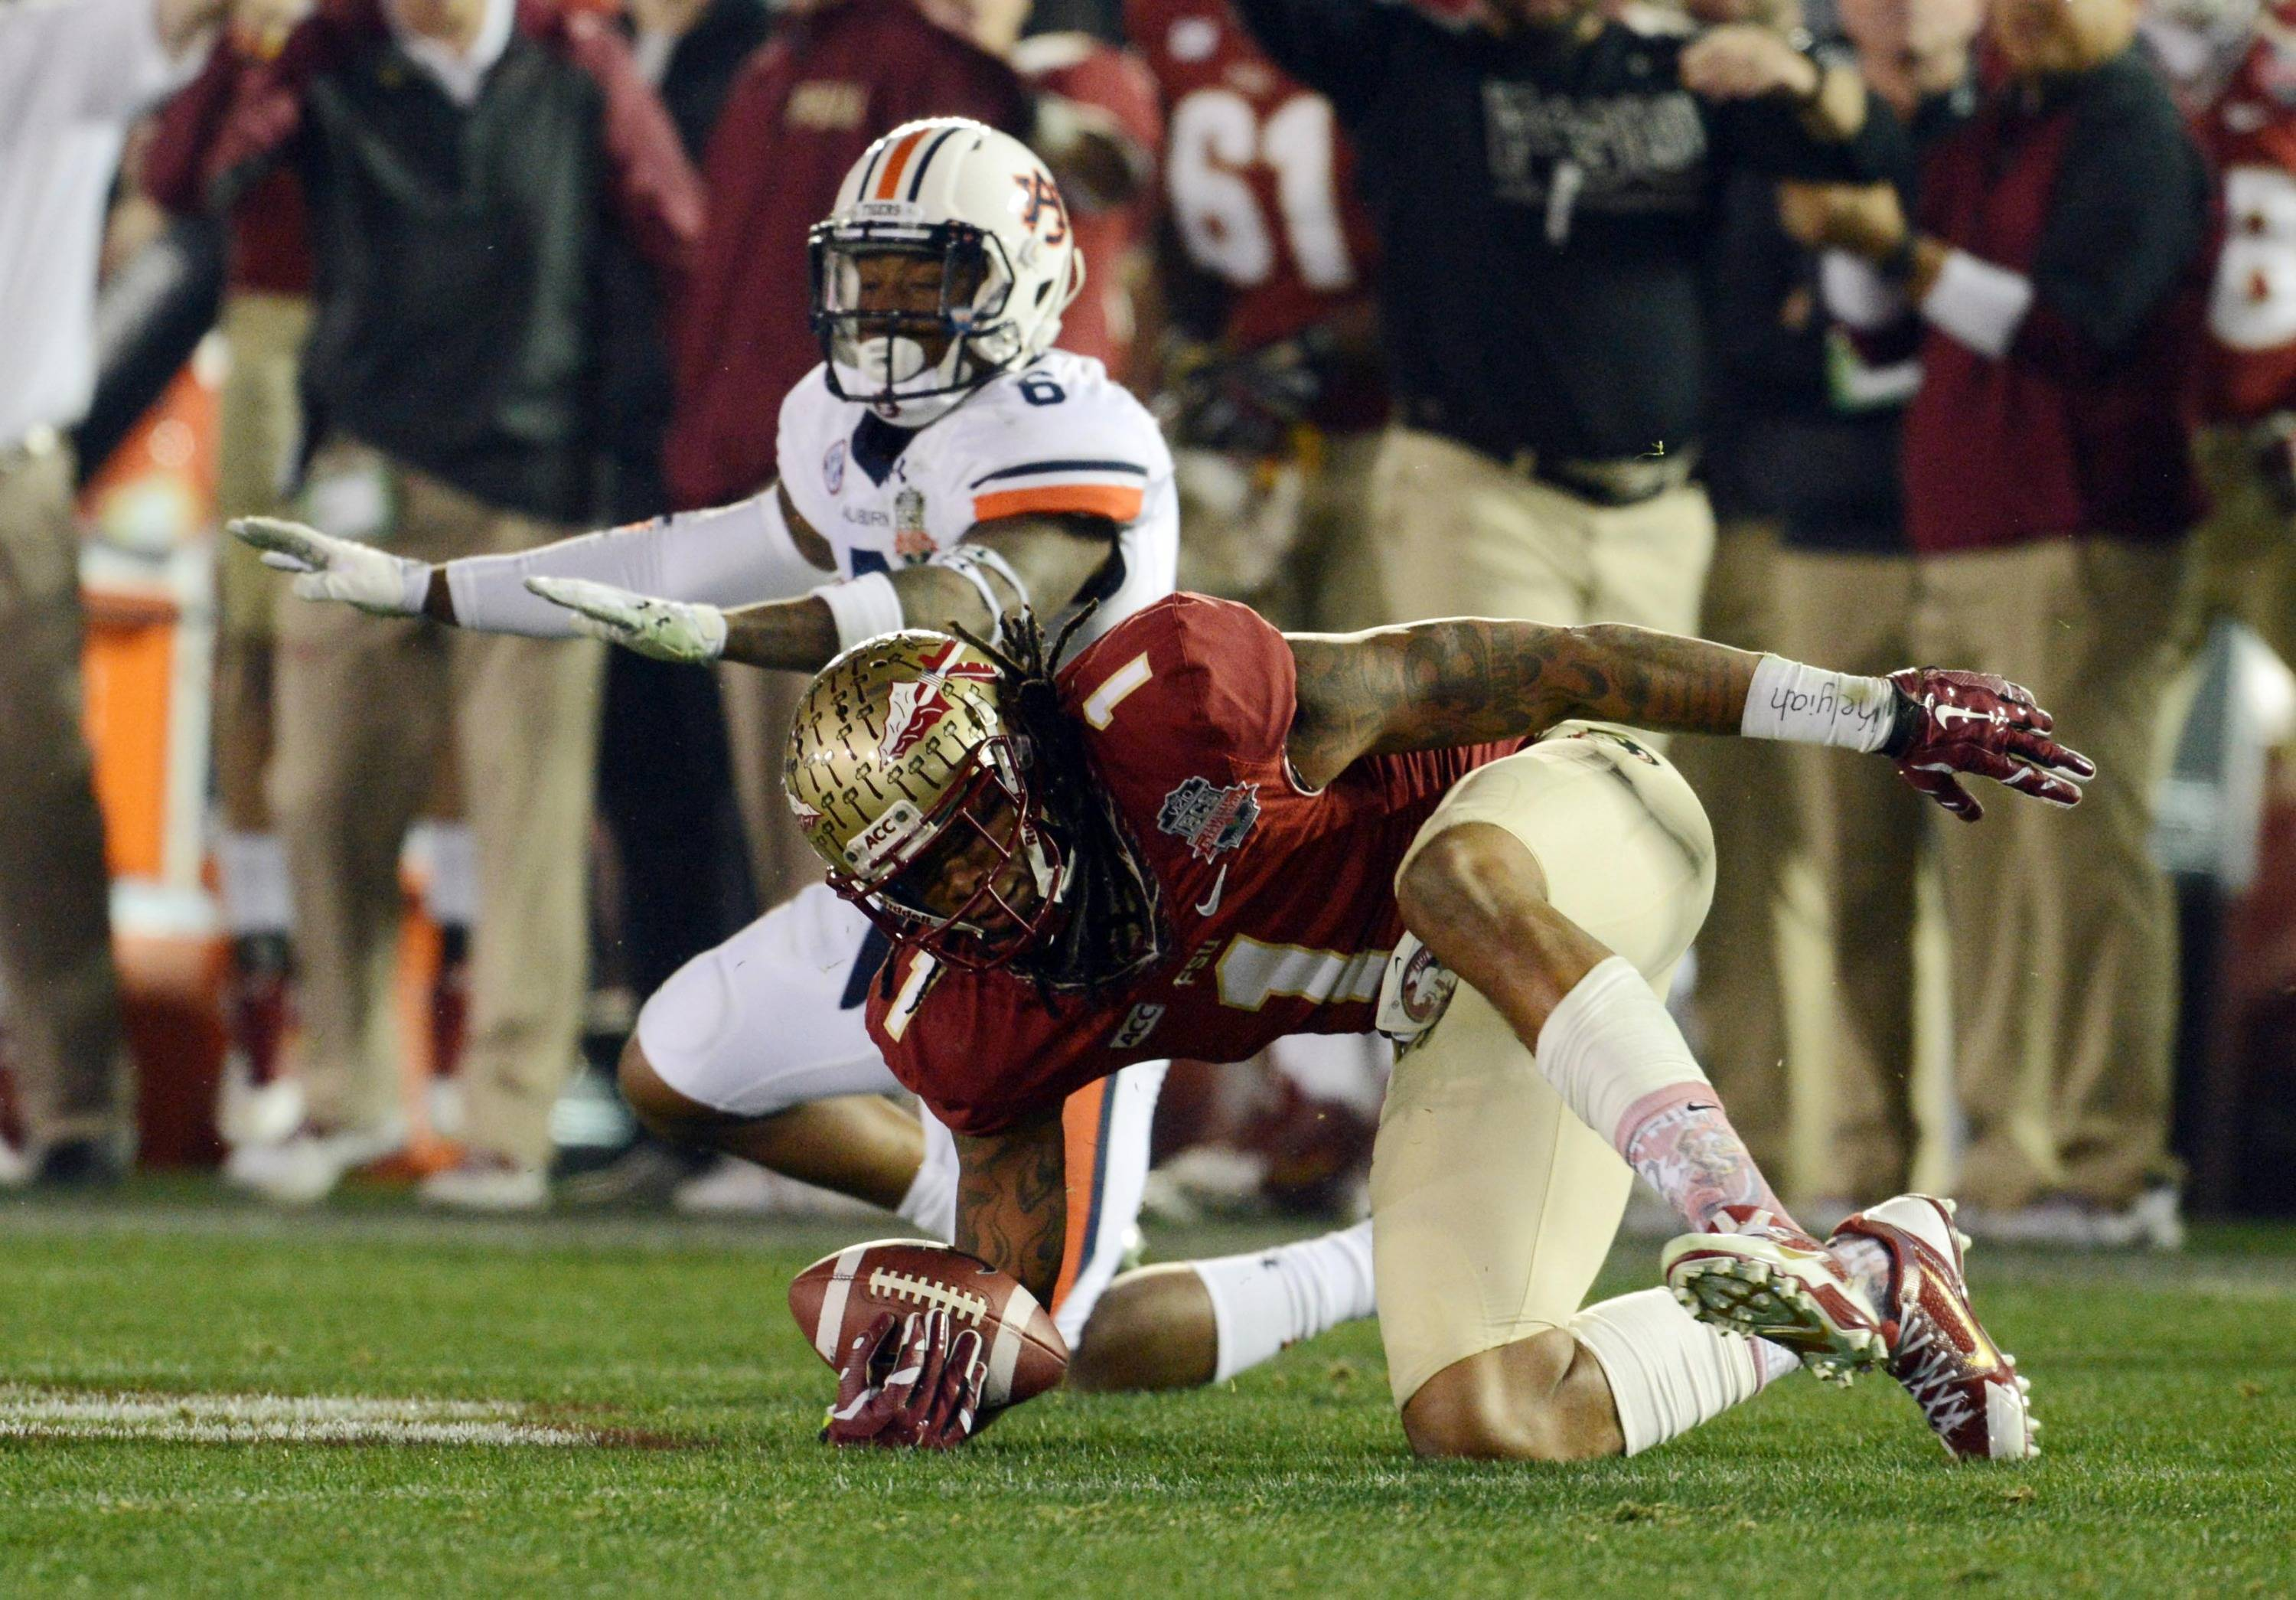 Jan 6, 2014; Pasadena, CA, USA; Florida State Seminoles wide receiver Kelvin Benjamin (1) reacts after being tackled by Auburn Tigers defensive back Jonathon Mincy (6) during the second half of the 2014 BCS National Championship game at the Rose Bowl.  Mandatory Credit: Jayne Kamin-Oncea-USA TODAY Sports